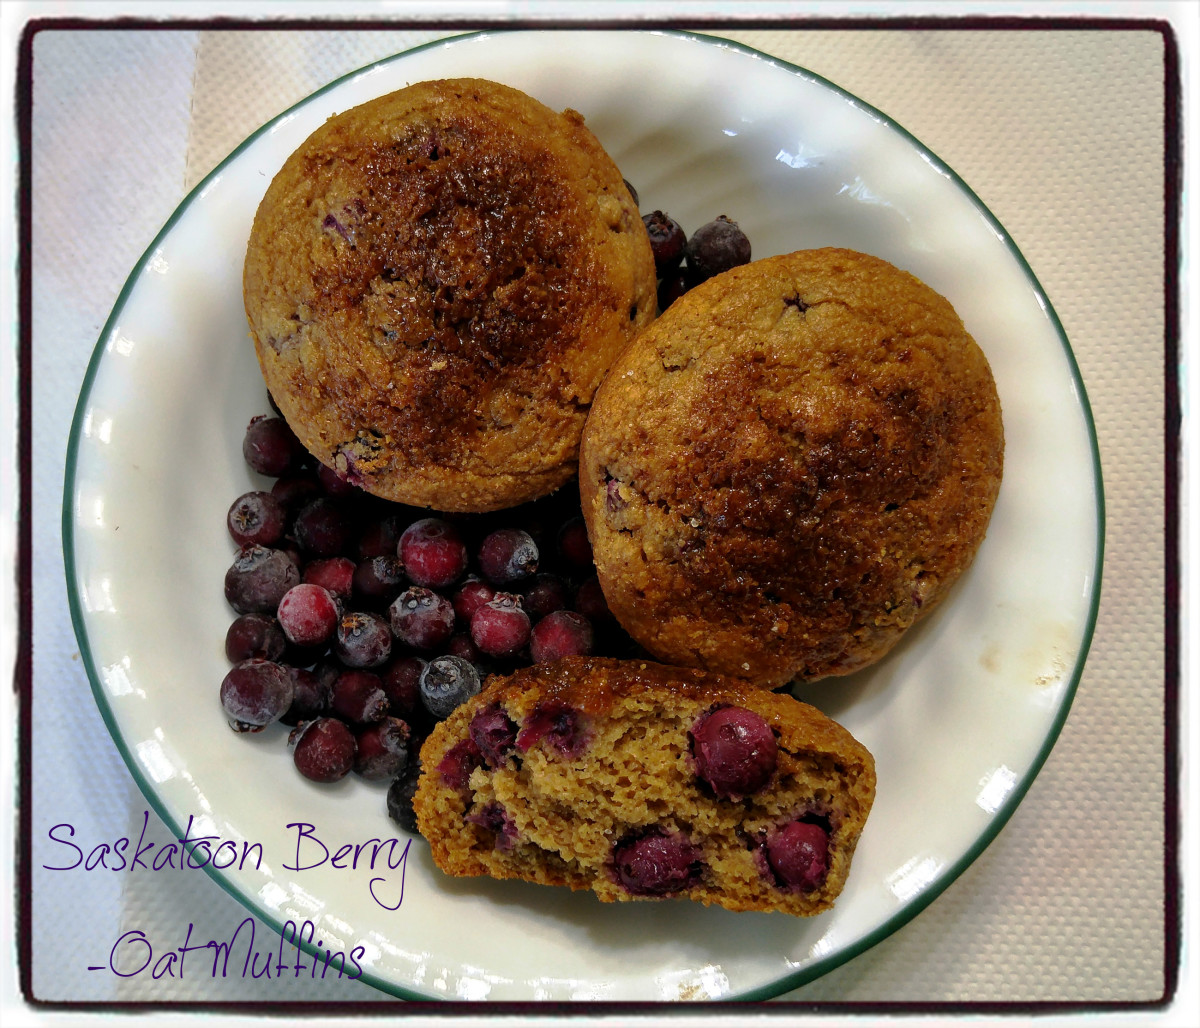 Saskatoon Berry Oat Muffins (Oil Free and Gluten-Free)